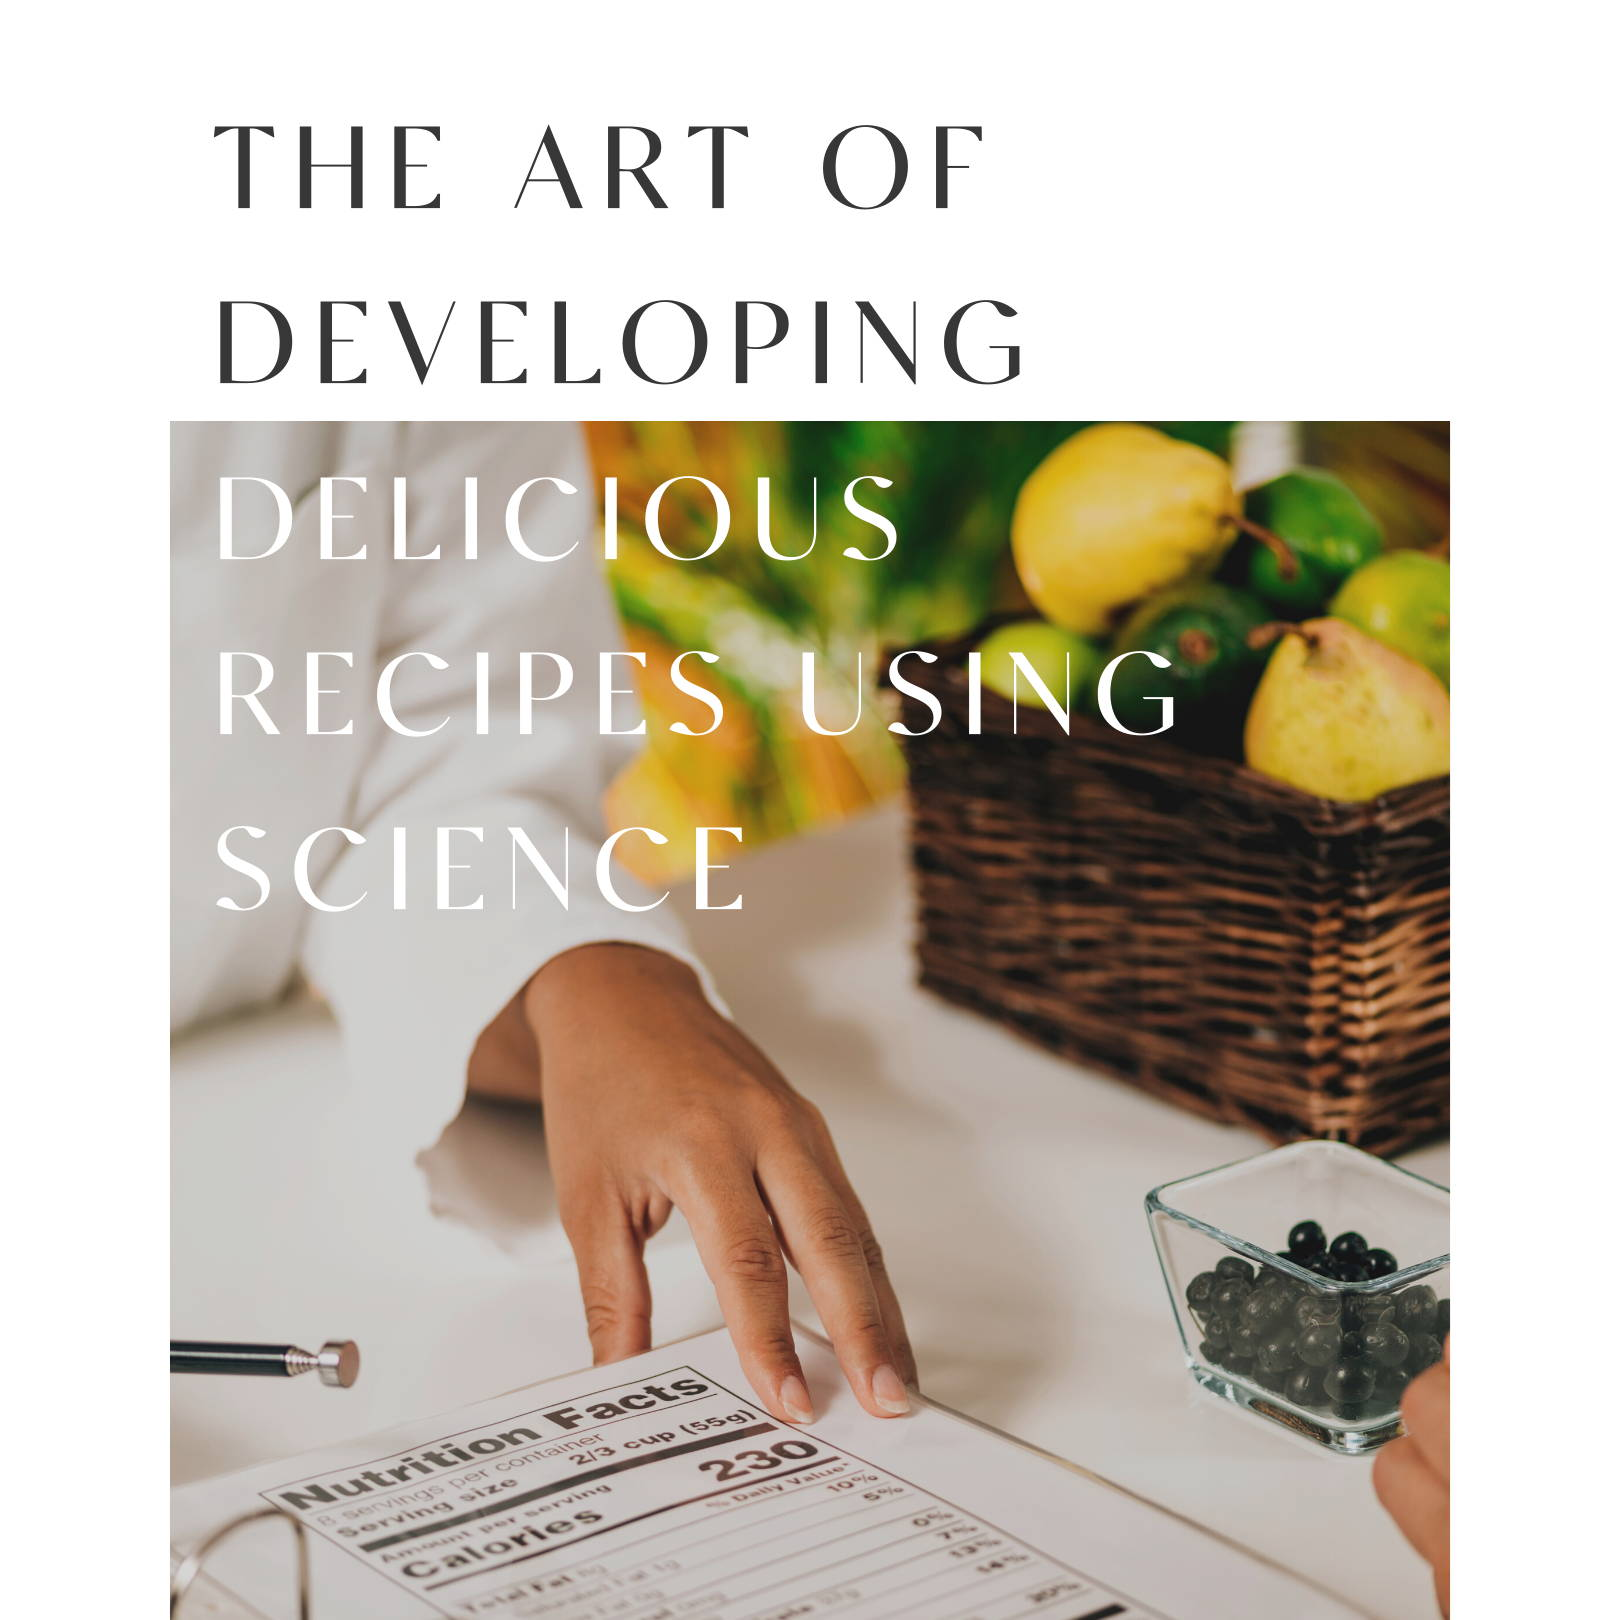 The Art of Developing Delicious Recipes Using Science